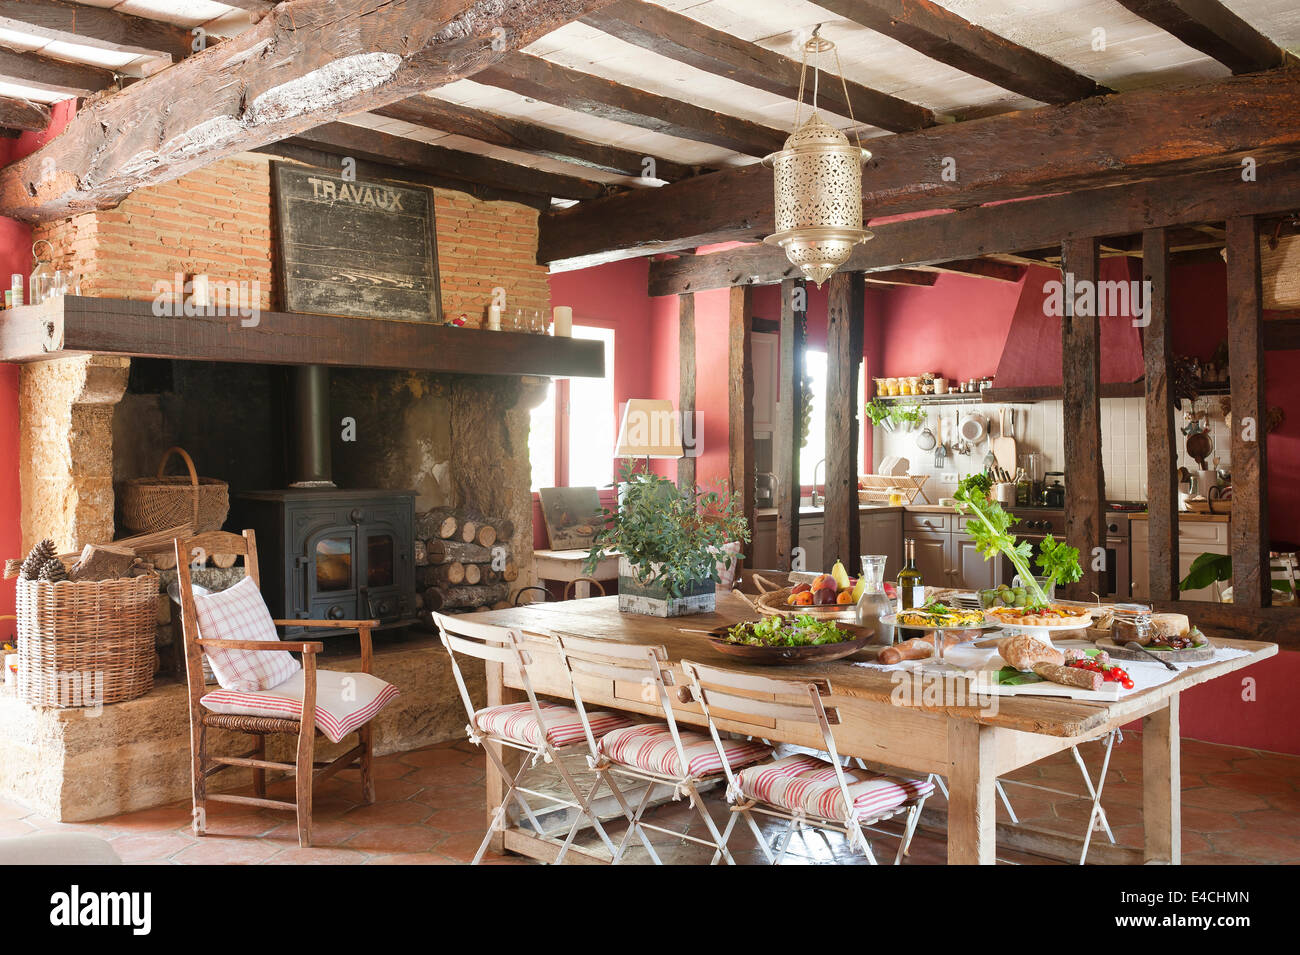 rustic french country kitchens. Brilliant Kitchens Large Rustic French Country Kitchen With Old Ceiling Beams Woodburning  Stove And Laid Table On Rustic Country Kitchens M